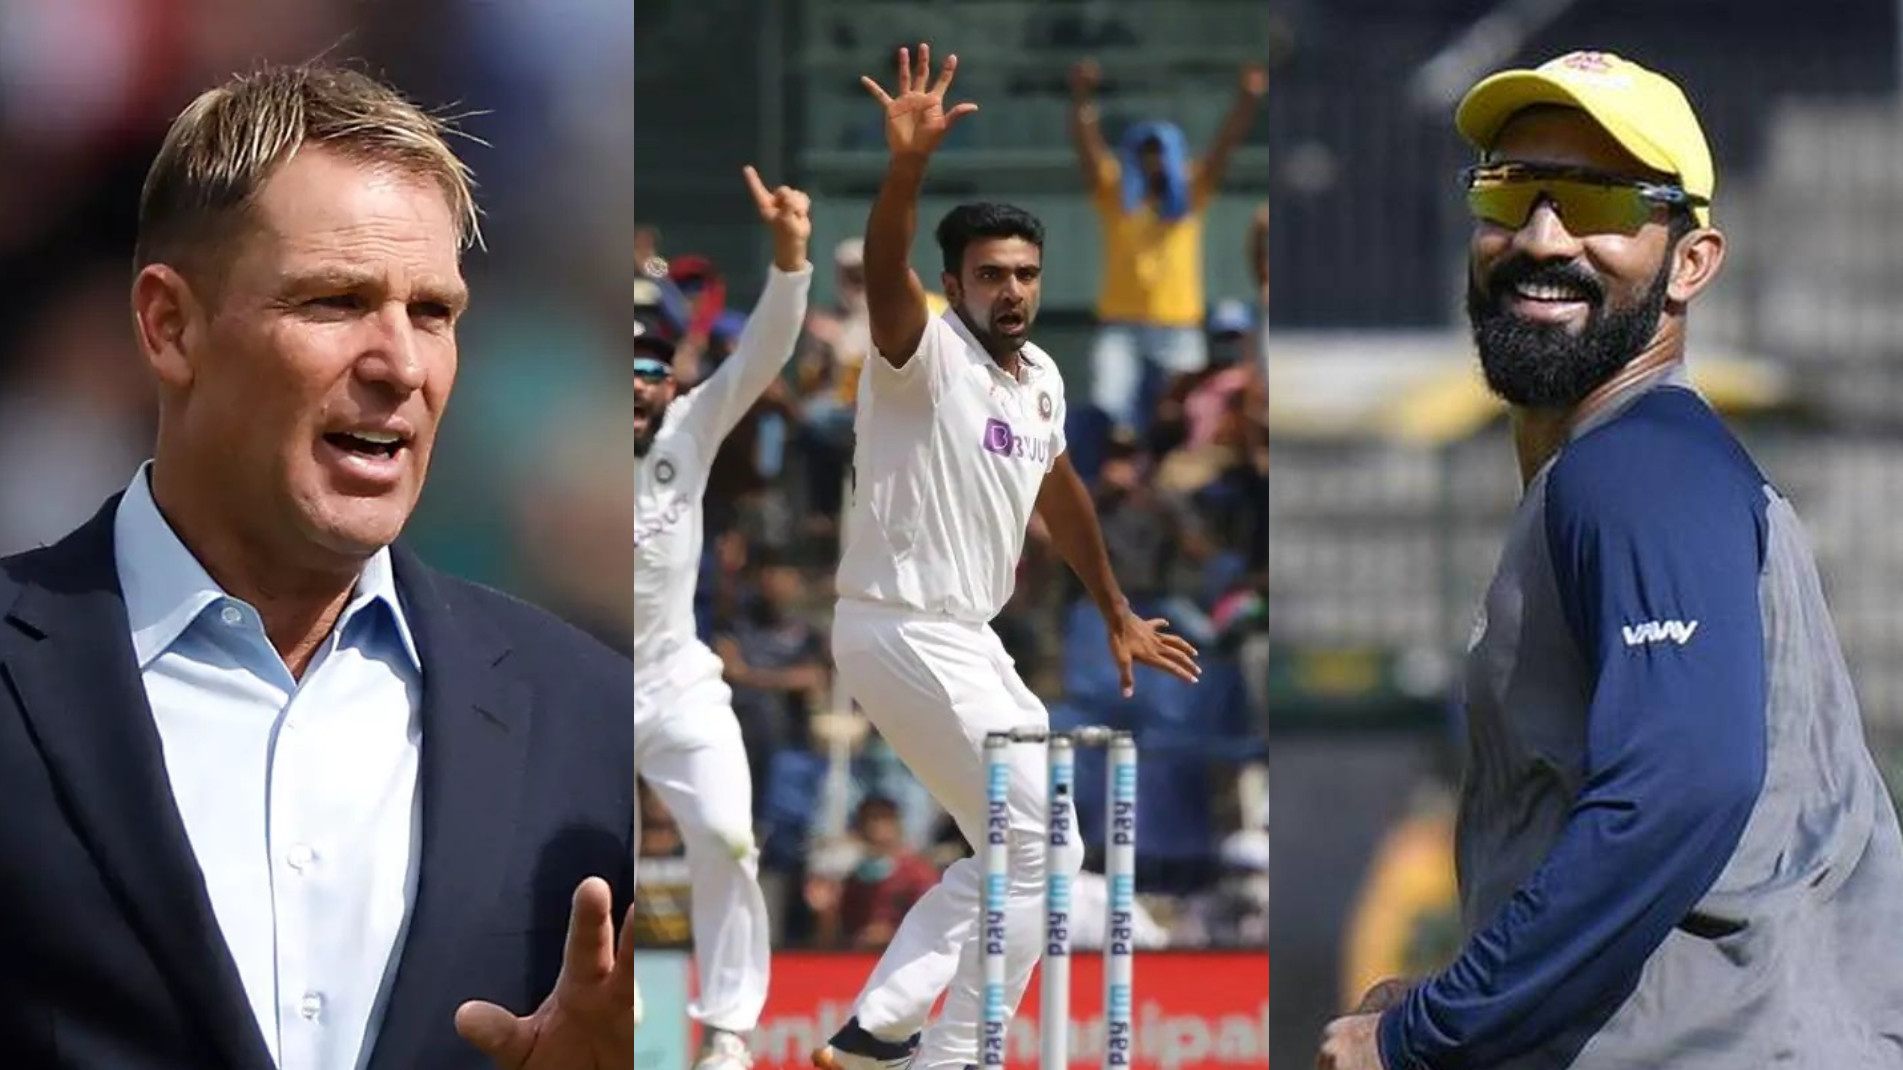 IND v ENG 2021: Cricket fraternity lauds R Ashwin's 5/43 as England makes 134; India ends day 2 with a lead of 249 runs